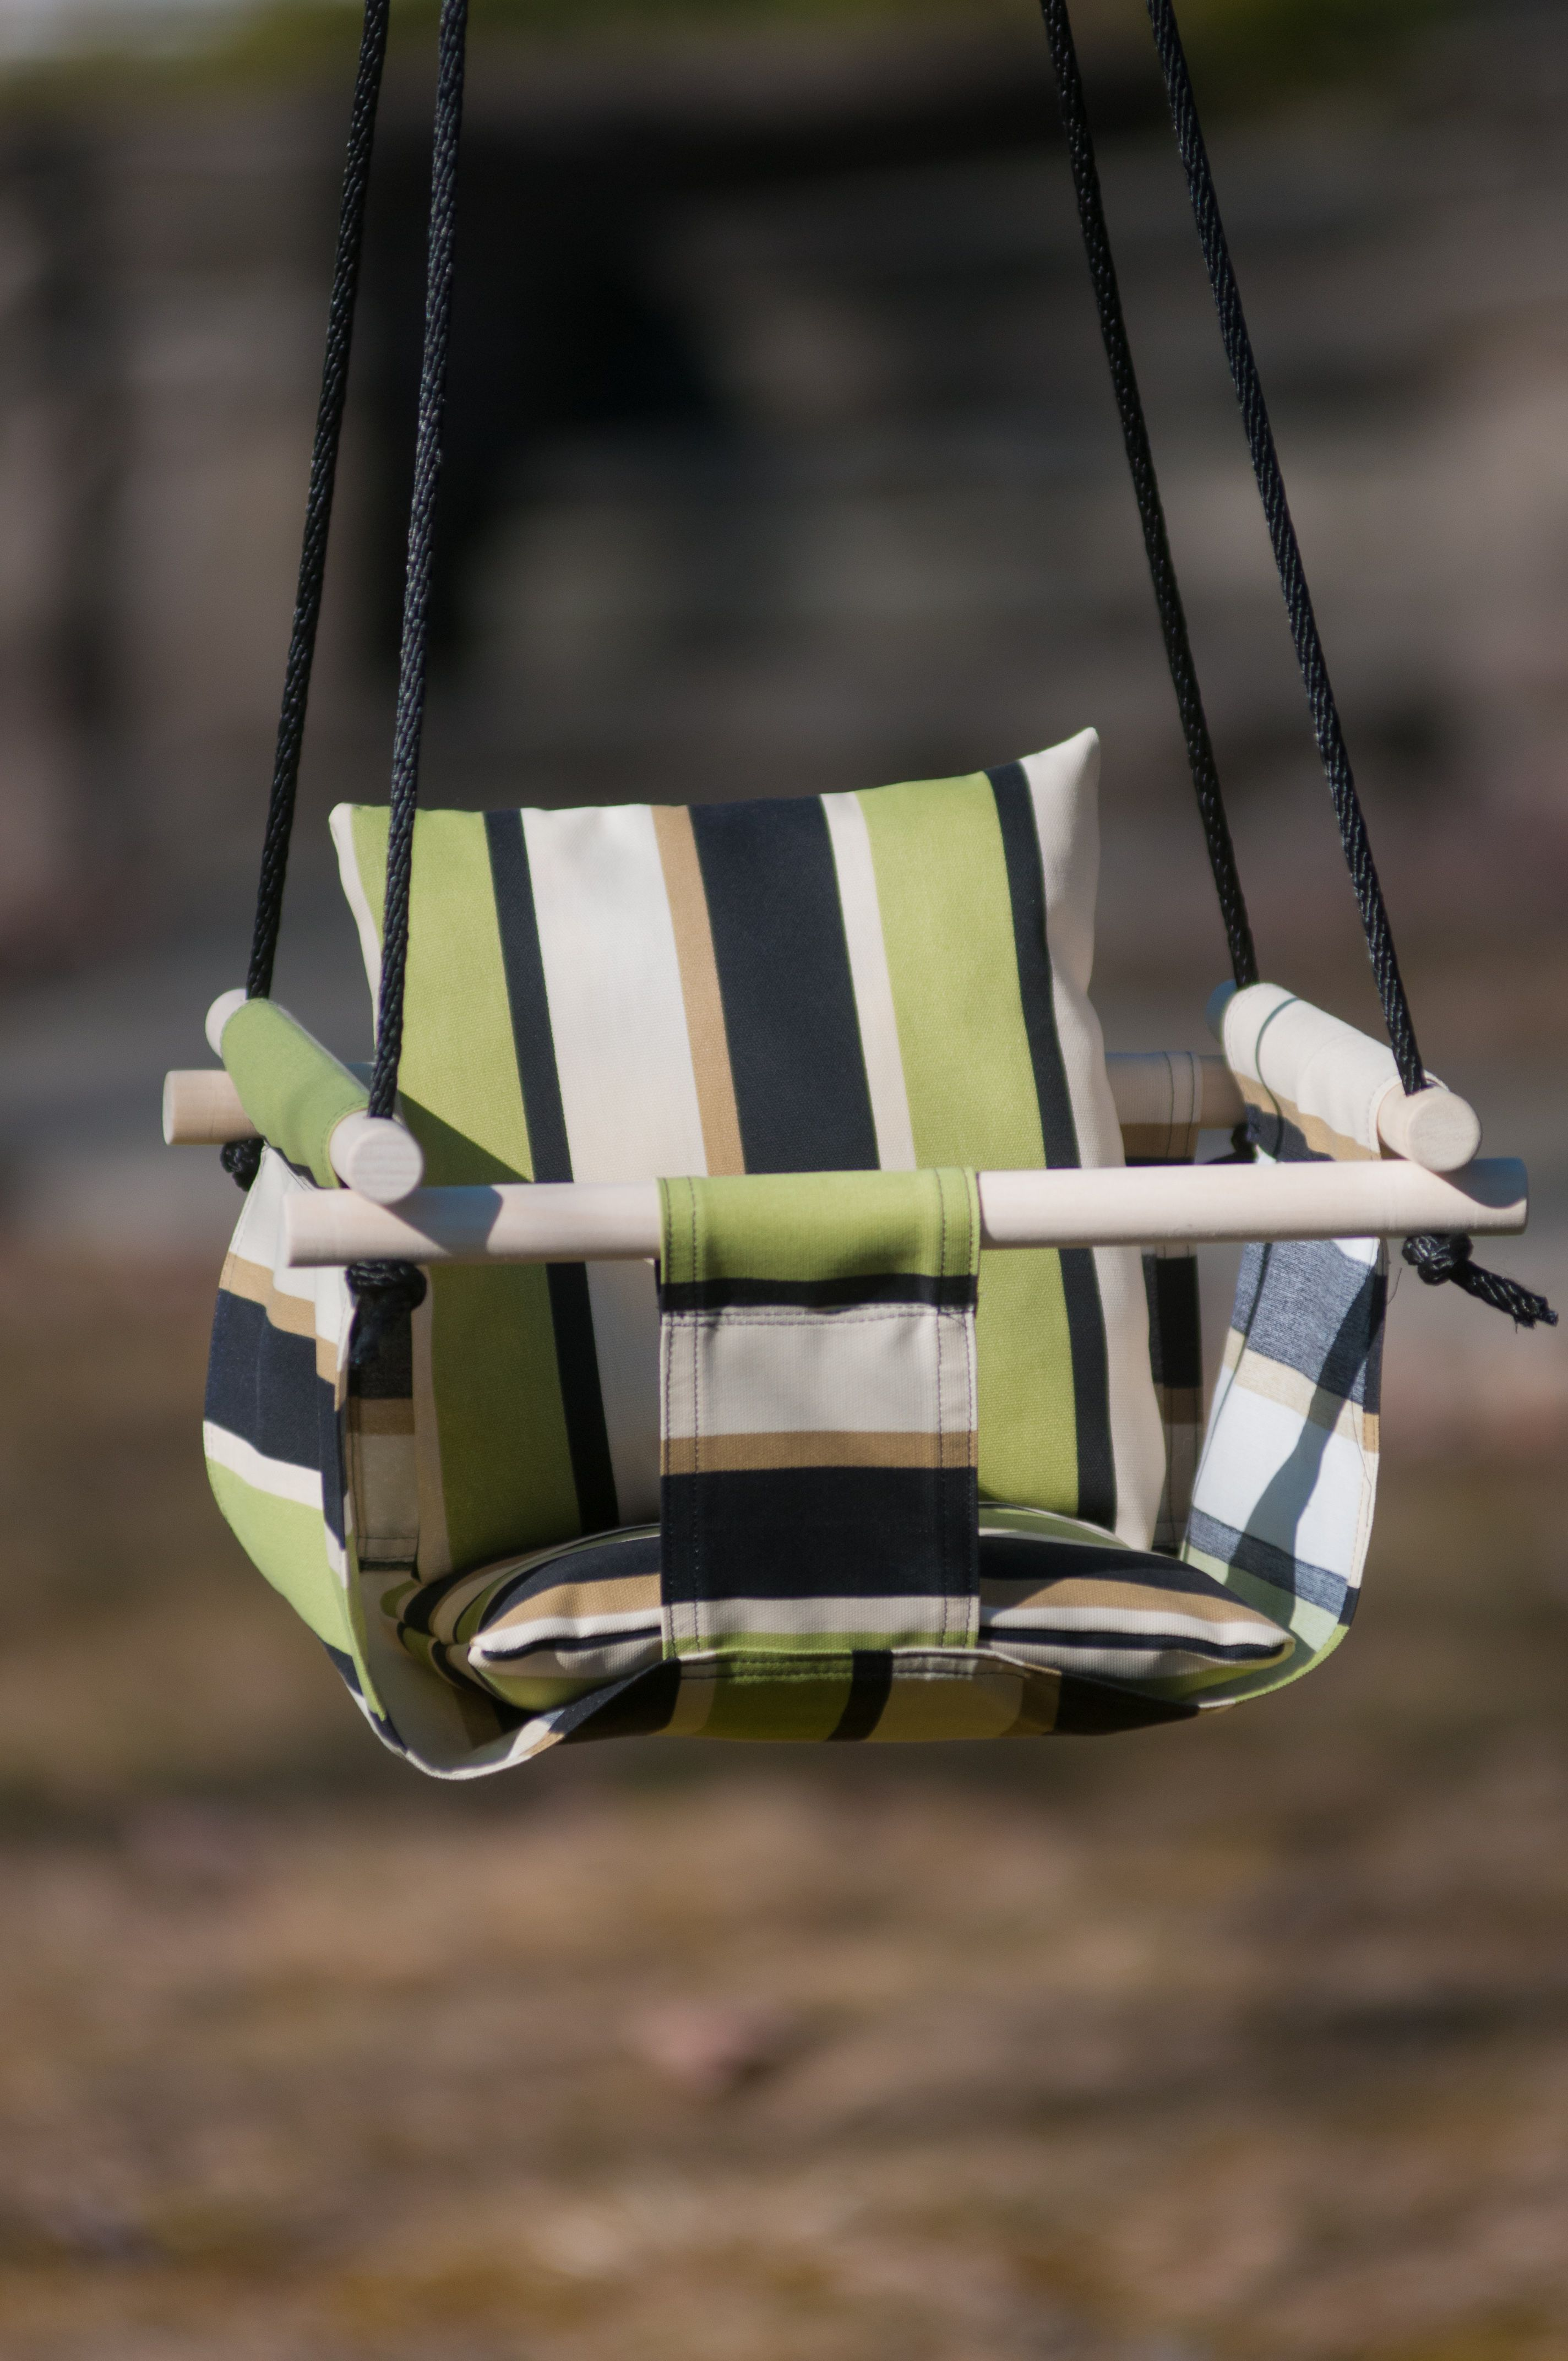 DIY Baby Swing from the April May 13 Issue of Smart Blonde